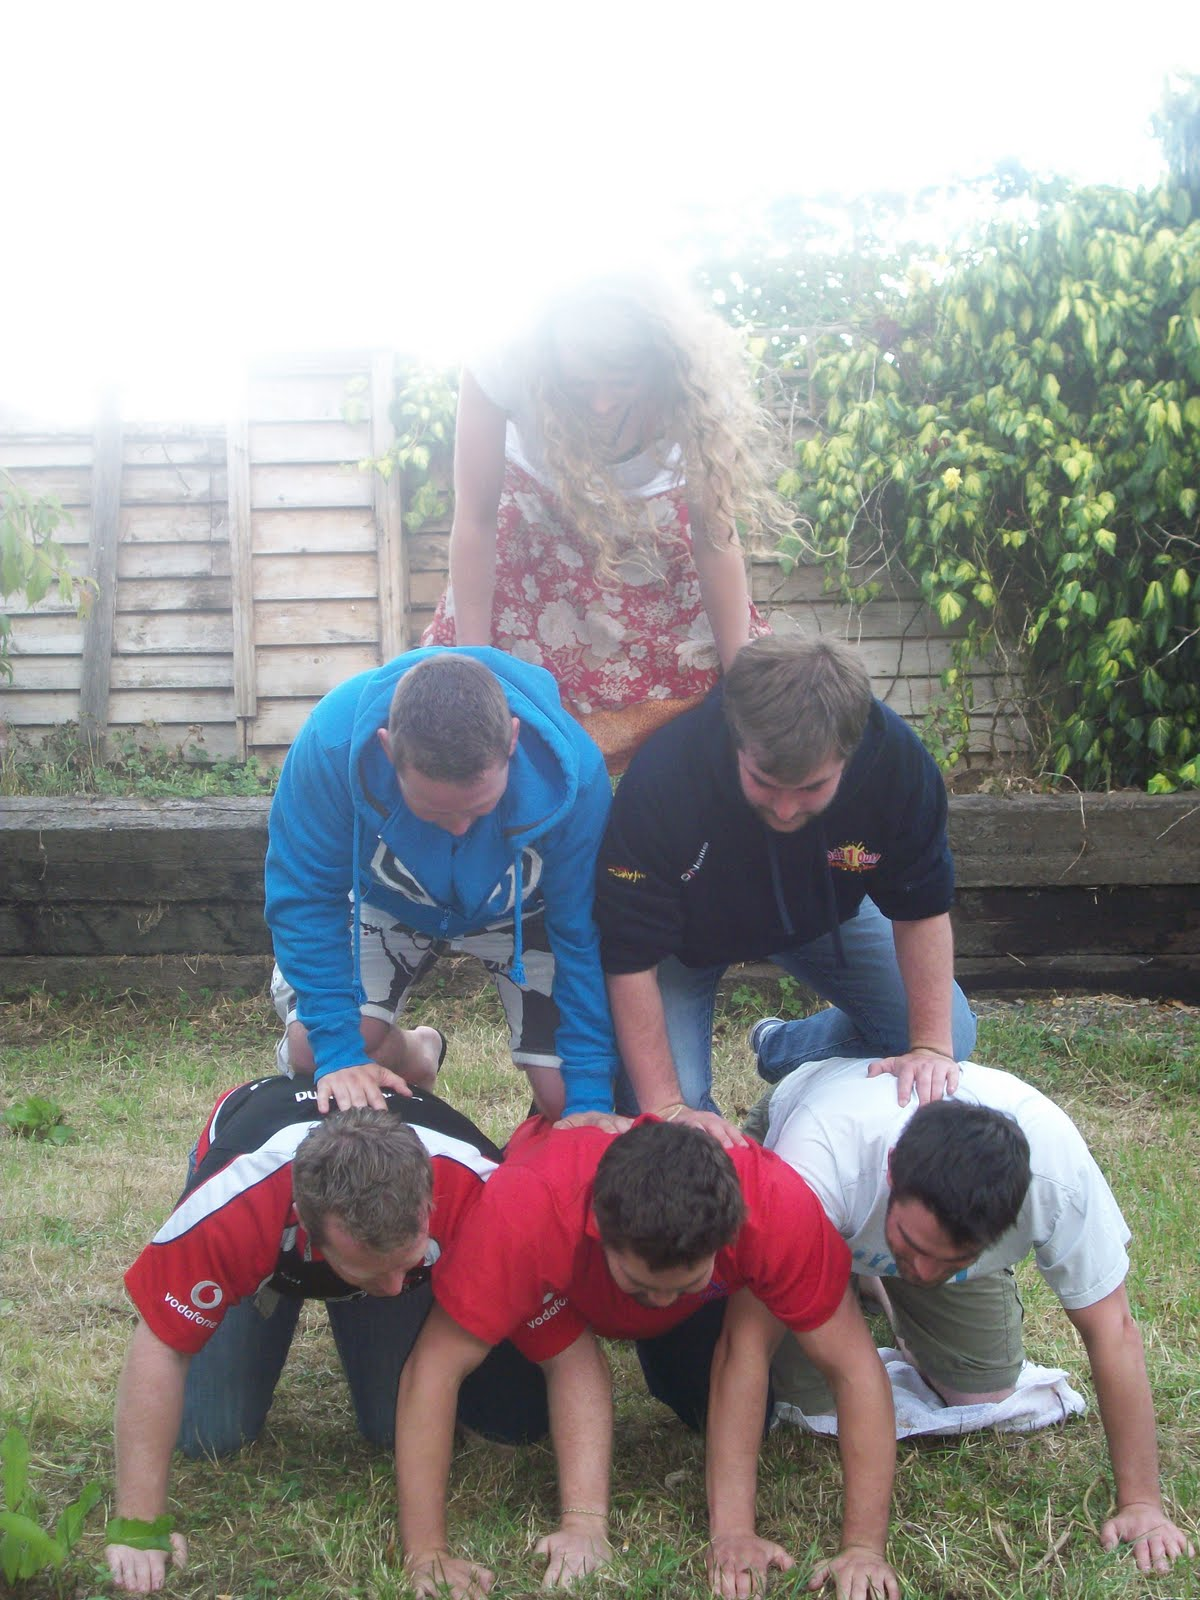 The Project 366 Things: Thing 80 Make A Human Pyramid